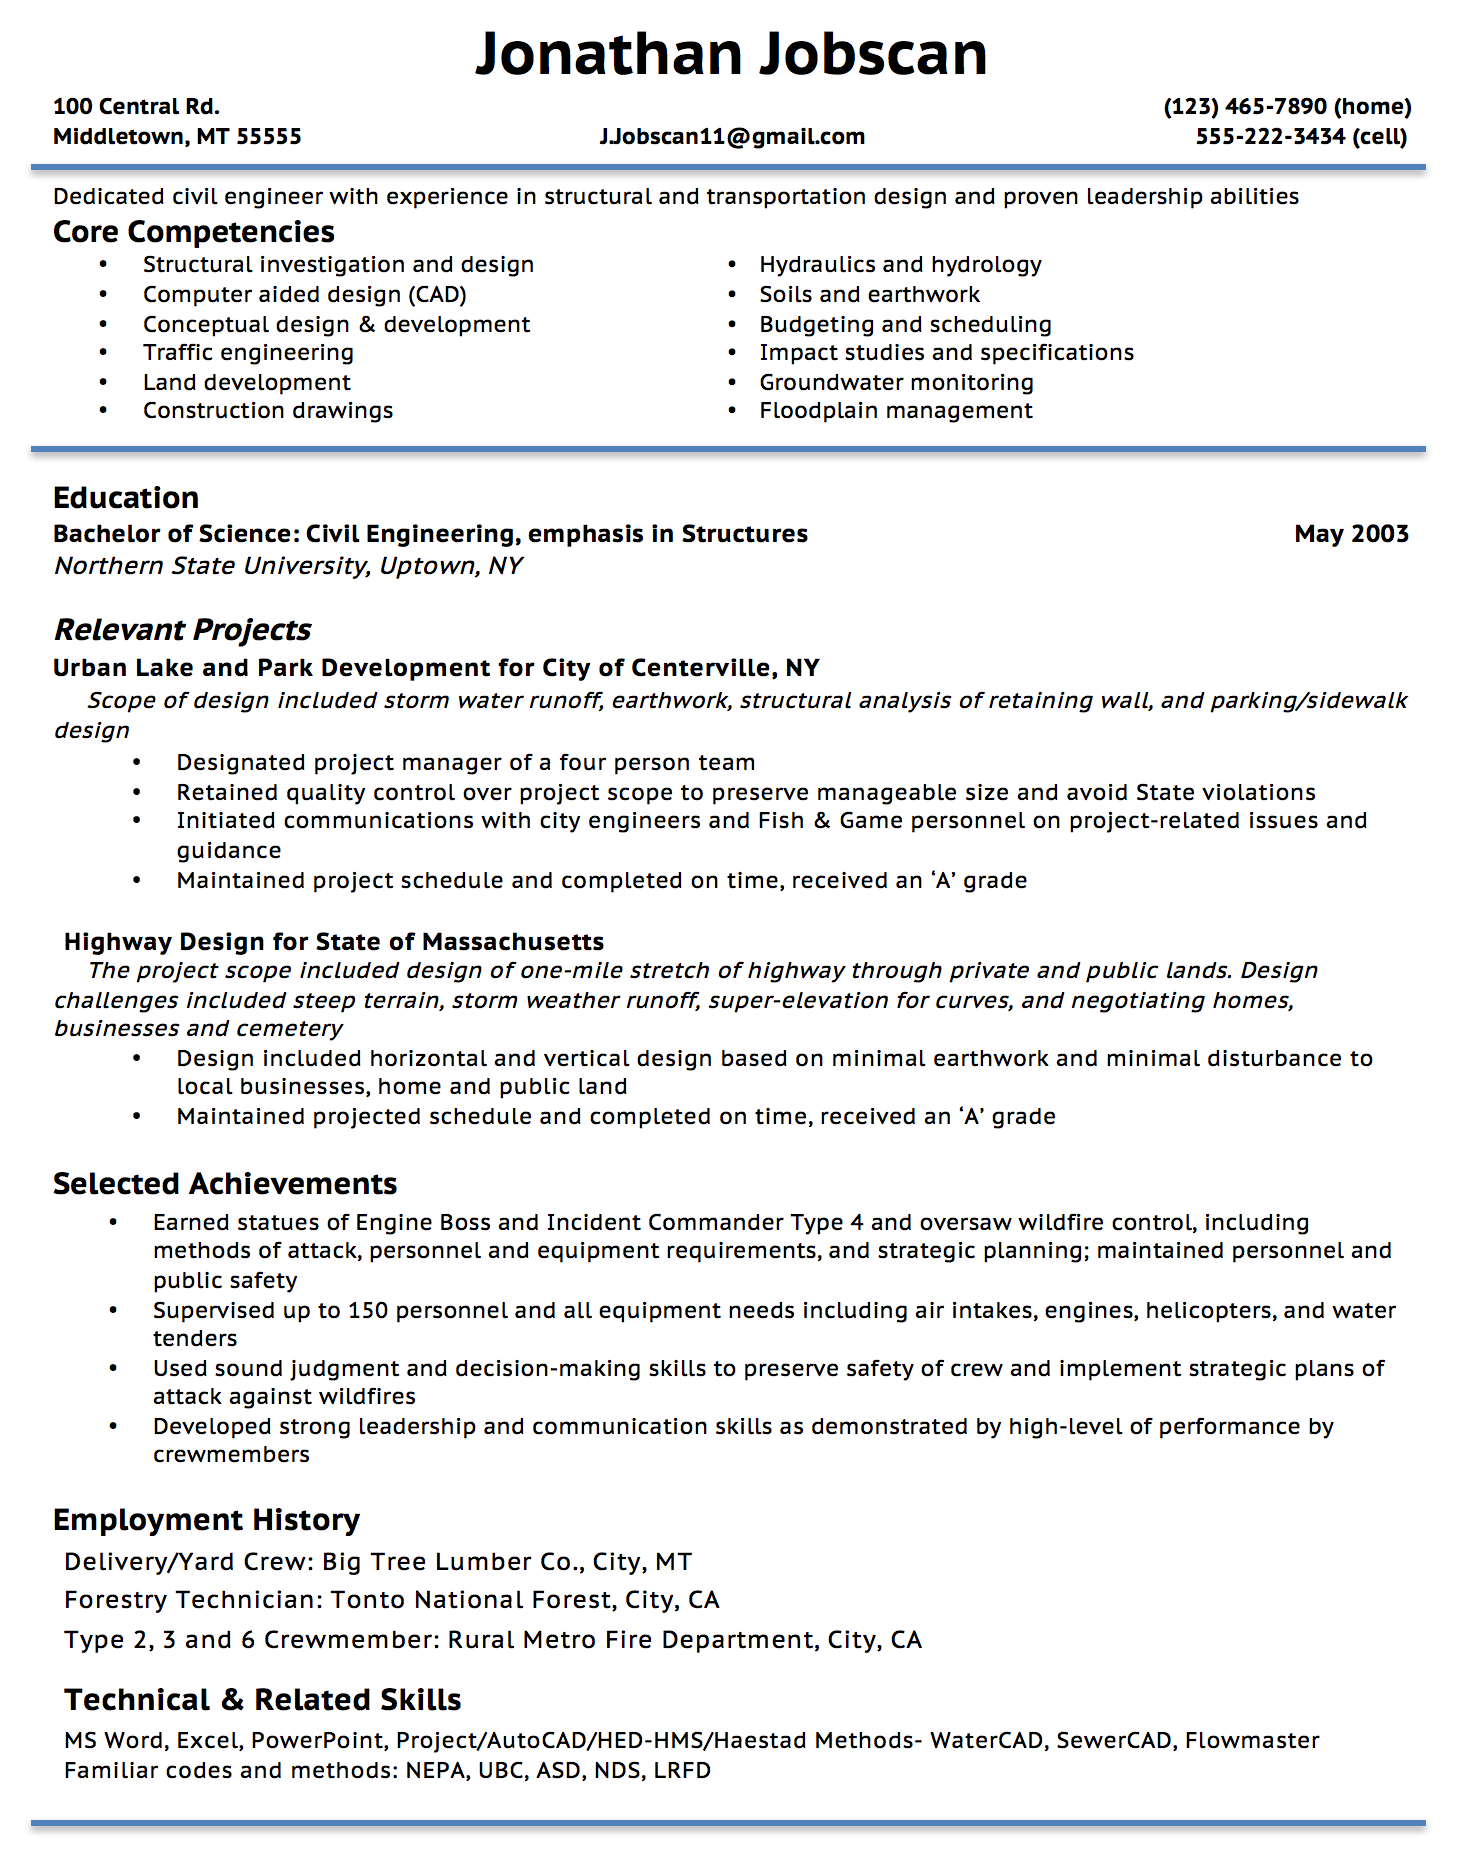 Opposenewapstandardsus  Inspiring Resume Writing Guide  Jobscan With Great Example Of A Functional Resume Format With Amazing Skills For A Resume Also Example Of A Resume In Addition Making A Resume And Resume Maker Free As Well As Simple Resume Template Additionally Executive Assistant Resume From Jobscanco With Opposenewapstandardsus  Great Resume Writing Guide  Jobscan With Amazing Example Of A Functional Resume Format And Inspiring Skills For A Resume Also Example Of A Resume In Addition Making A Resume From Jobscanco